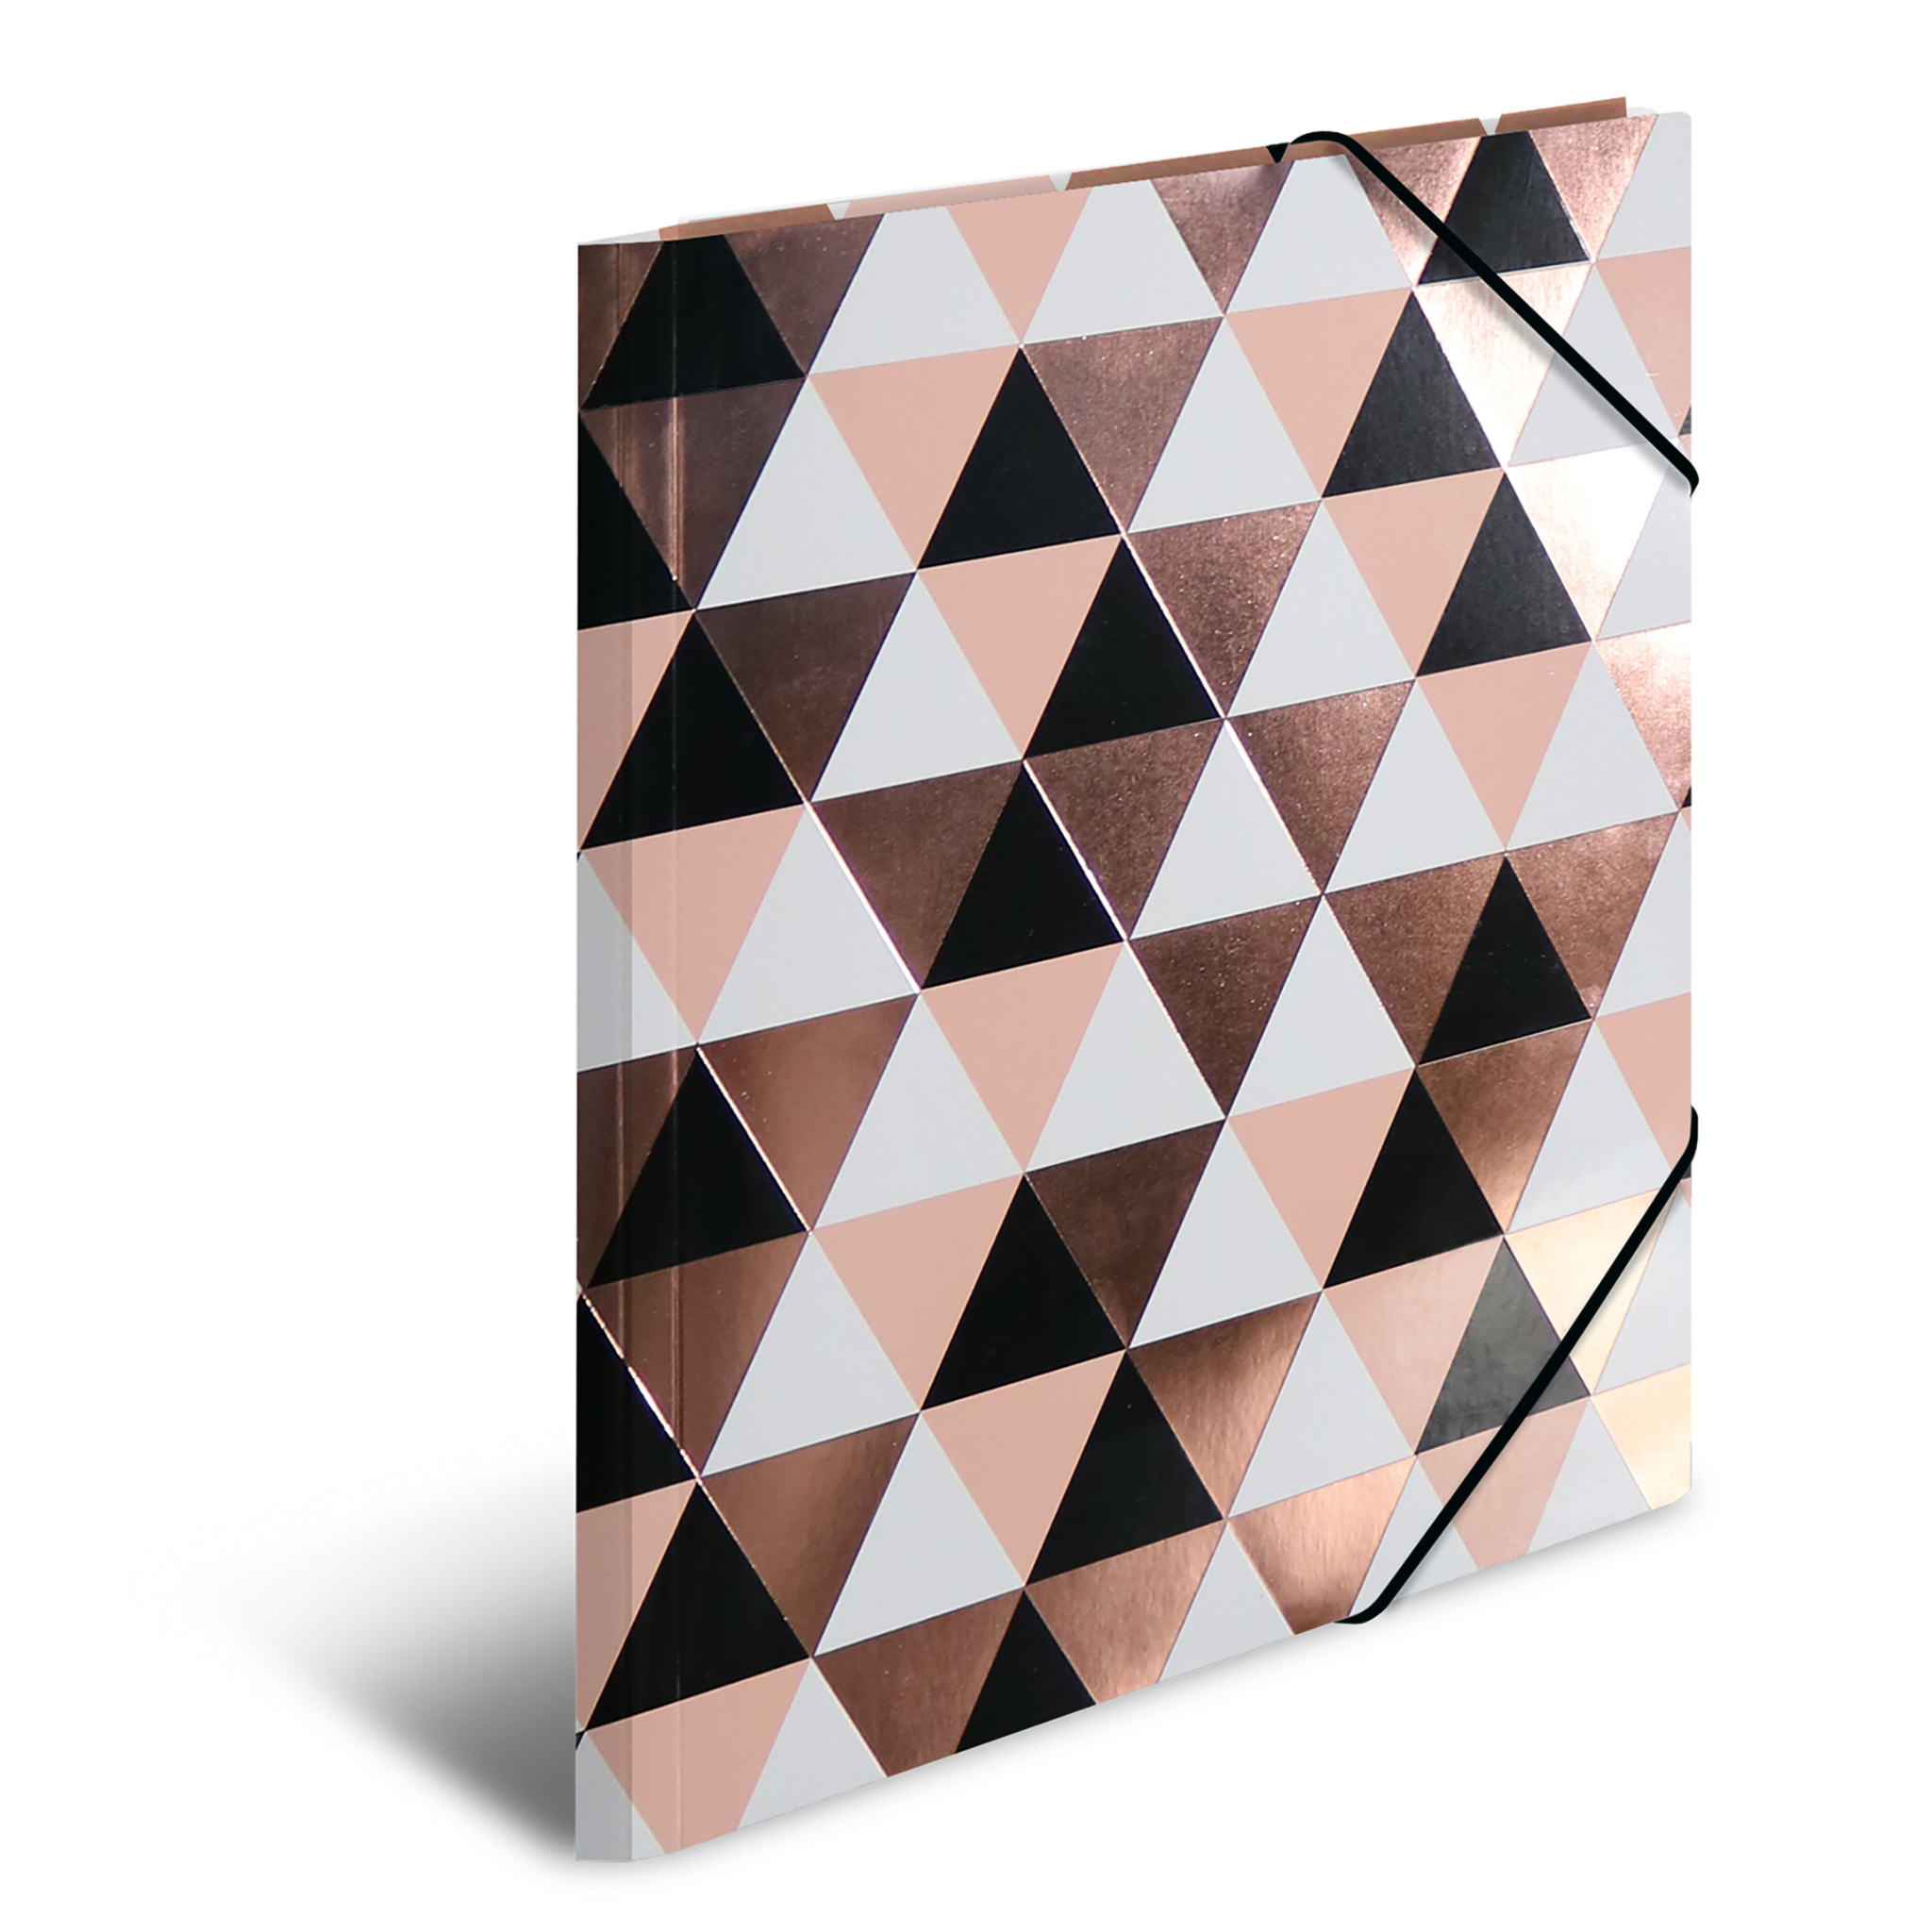 HERMA 19318 - Sammelmappe - A4 - Pappe - Rosegold - Abstract